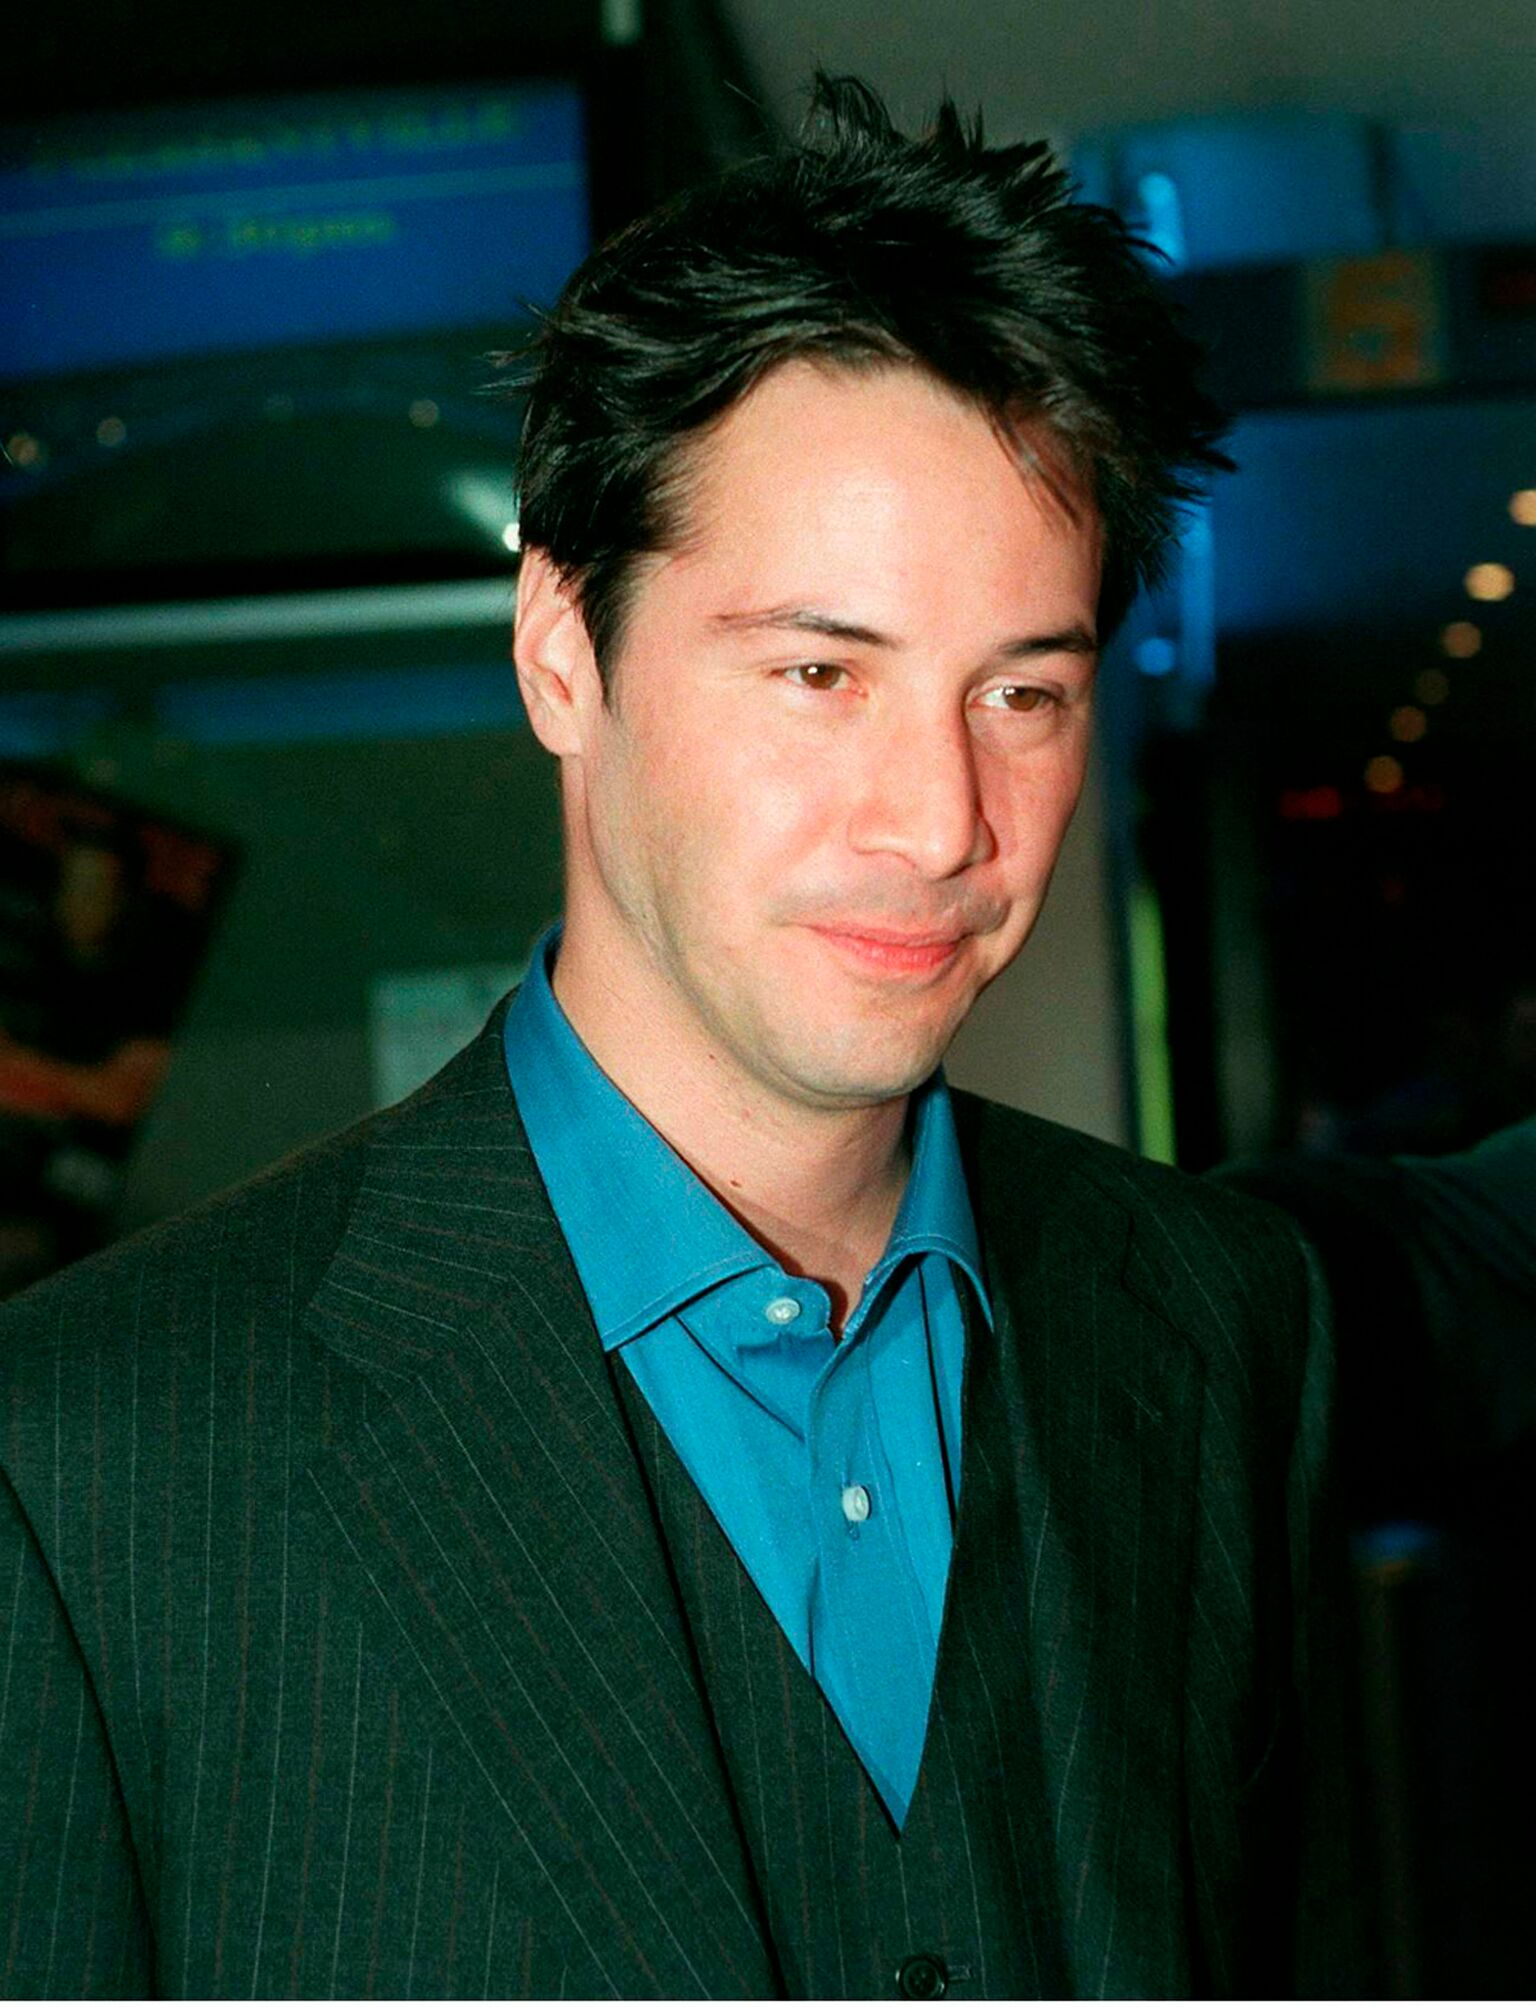 Keanu Reeves attends the Australian Premiere of The Matrix in Sydney, Australia.  | Getty Images